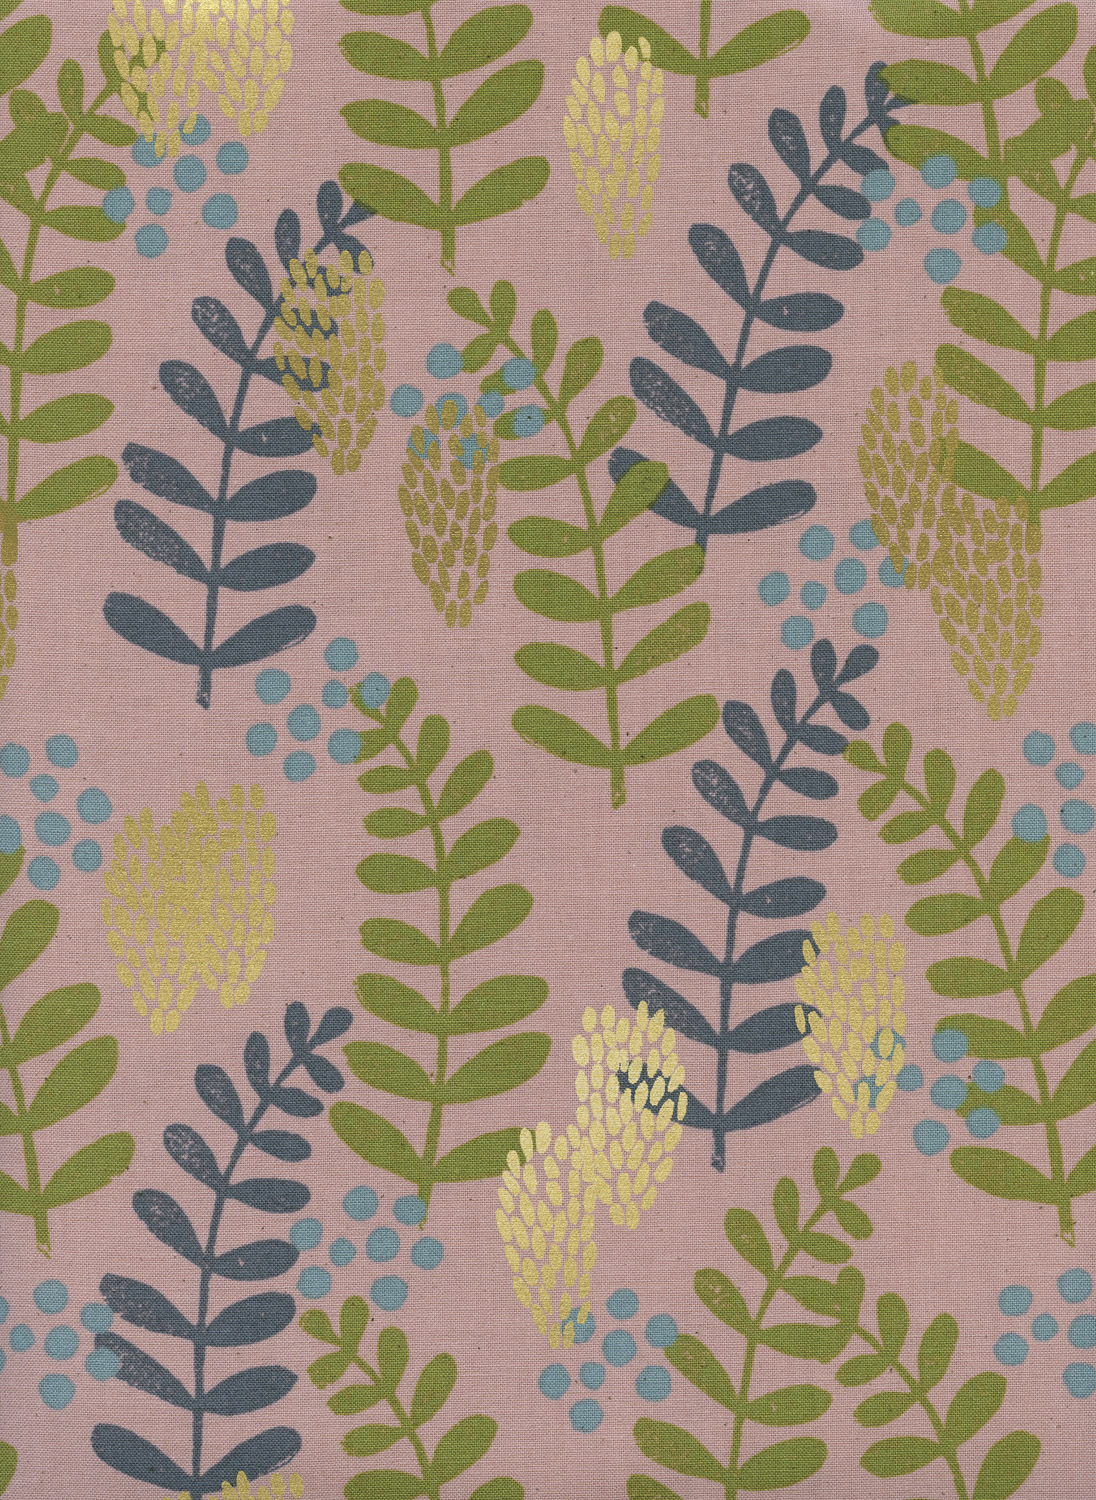 Jen Hewett Imagined Landscapes - Fern Dell (Rose Gold)